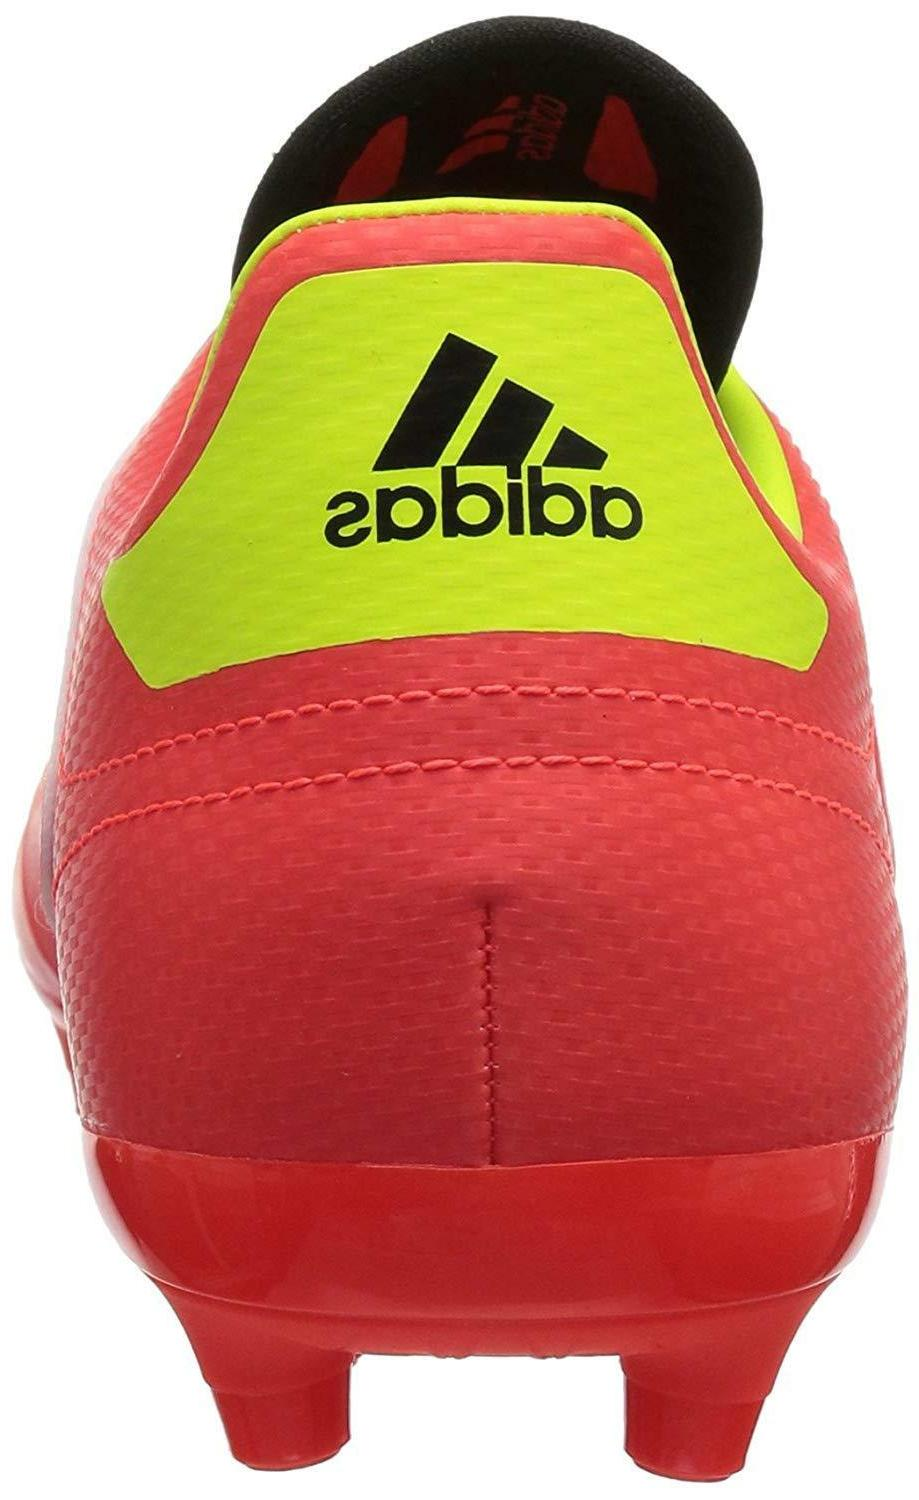 adidas Copa Firm Ground Soccer